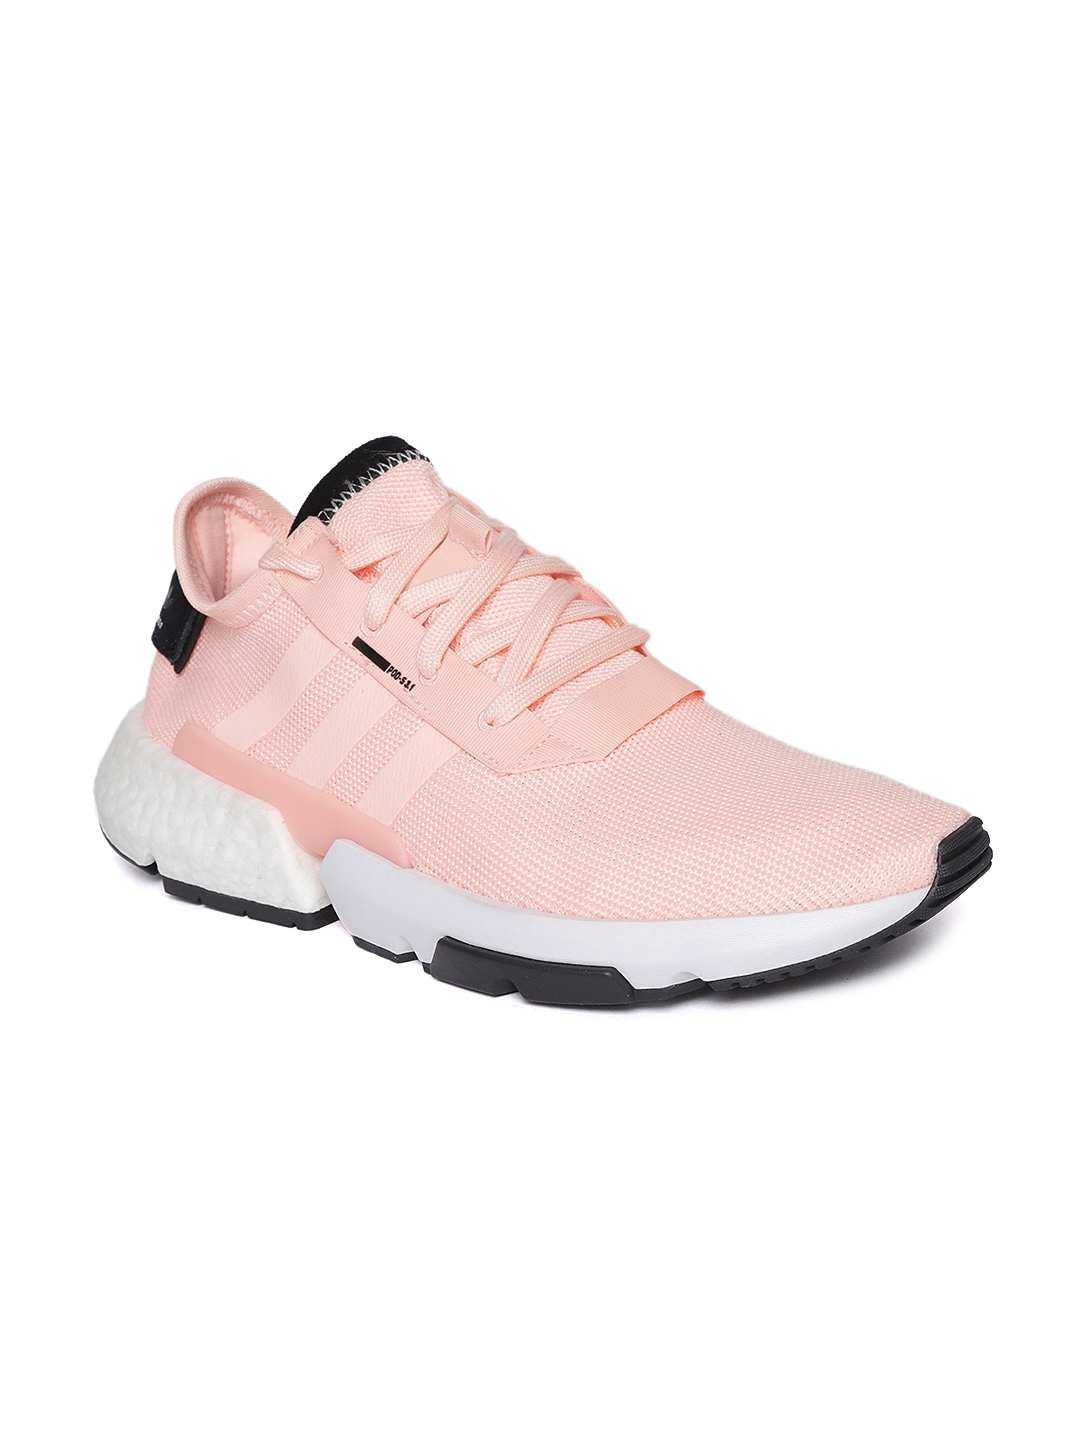 0f1c5733fcd Buy ADIDAS Originals Men Pink POD S3.1 Casual Shoes - Casual Shoes ...